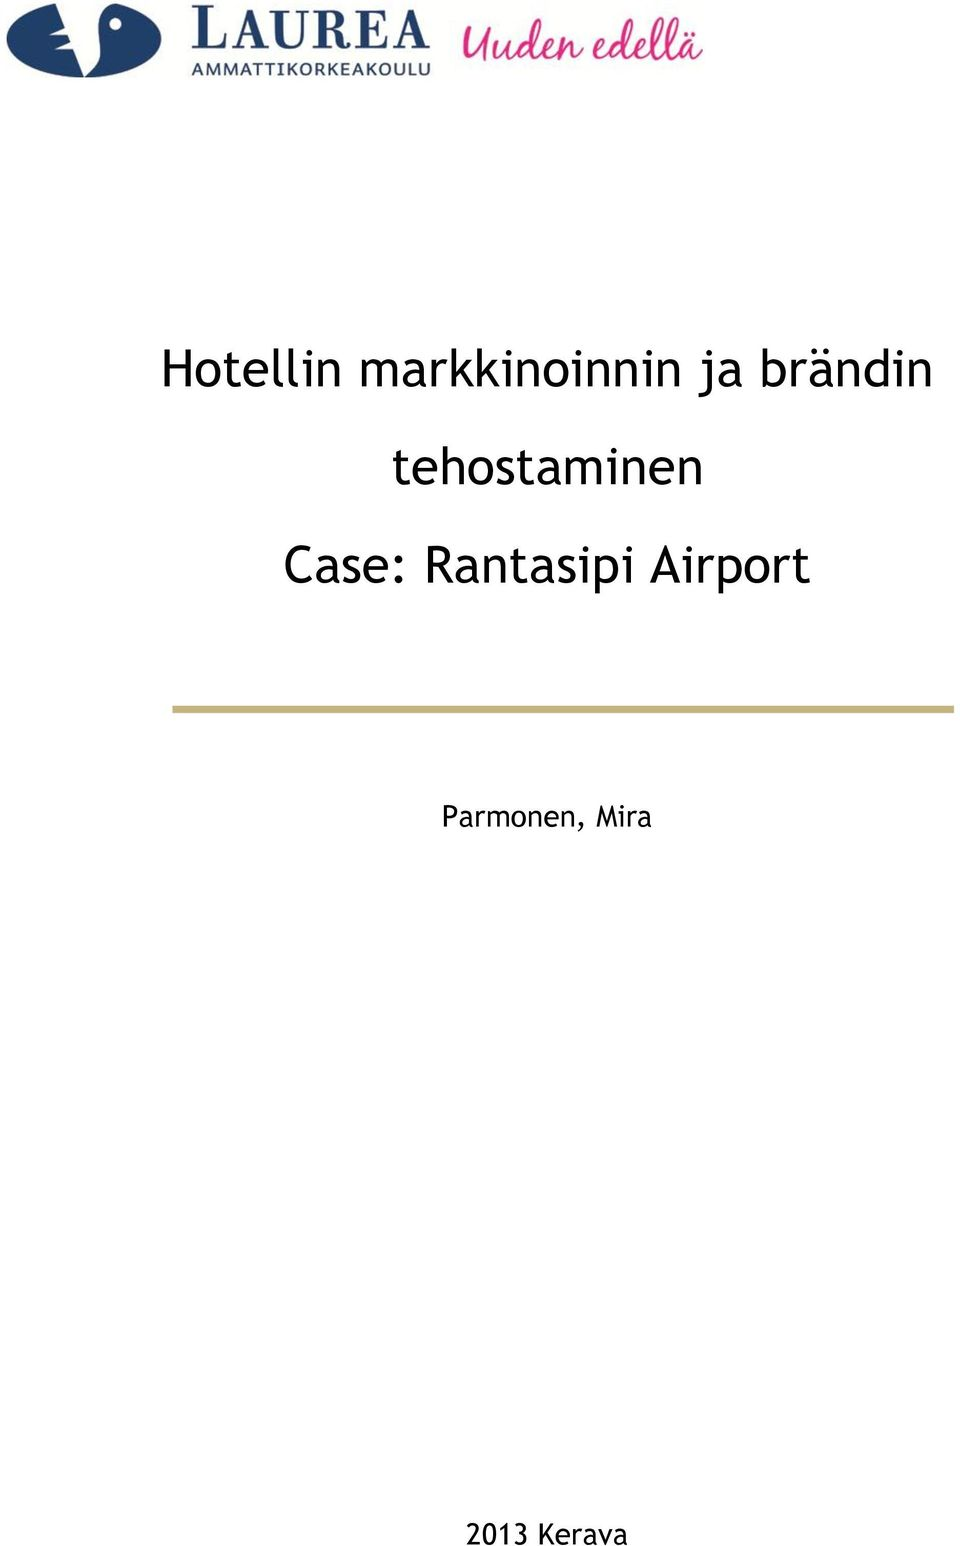 Case: Rantasipi Airport